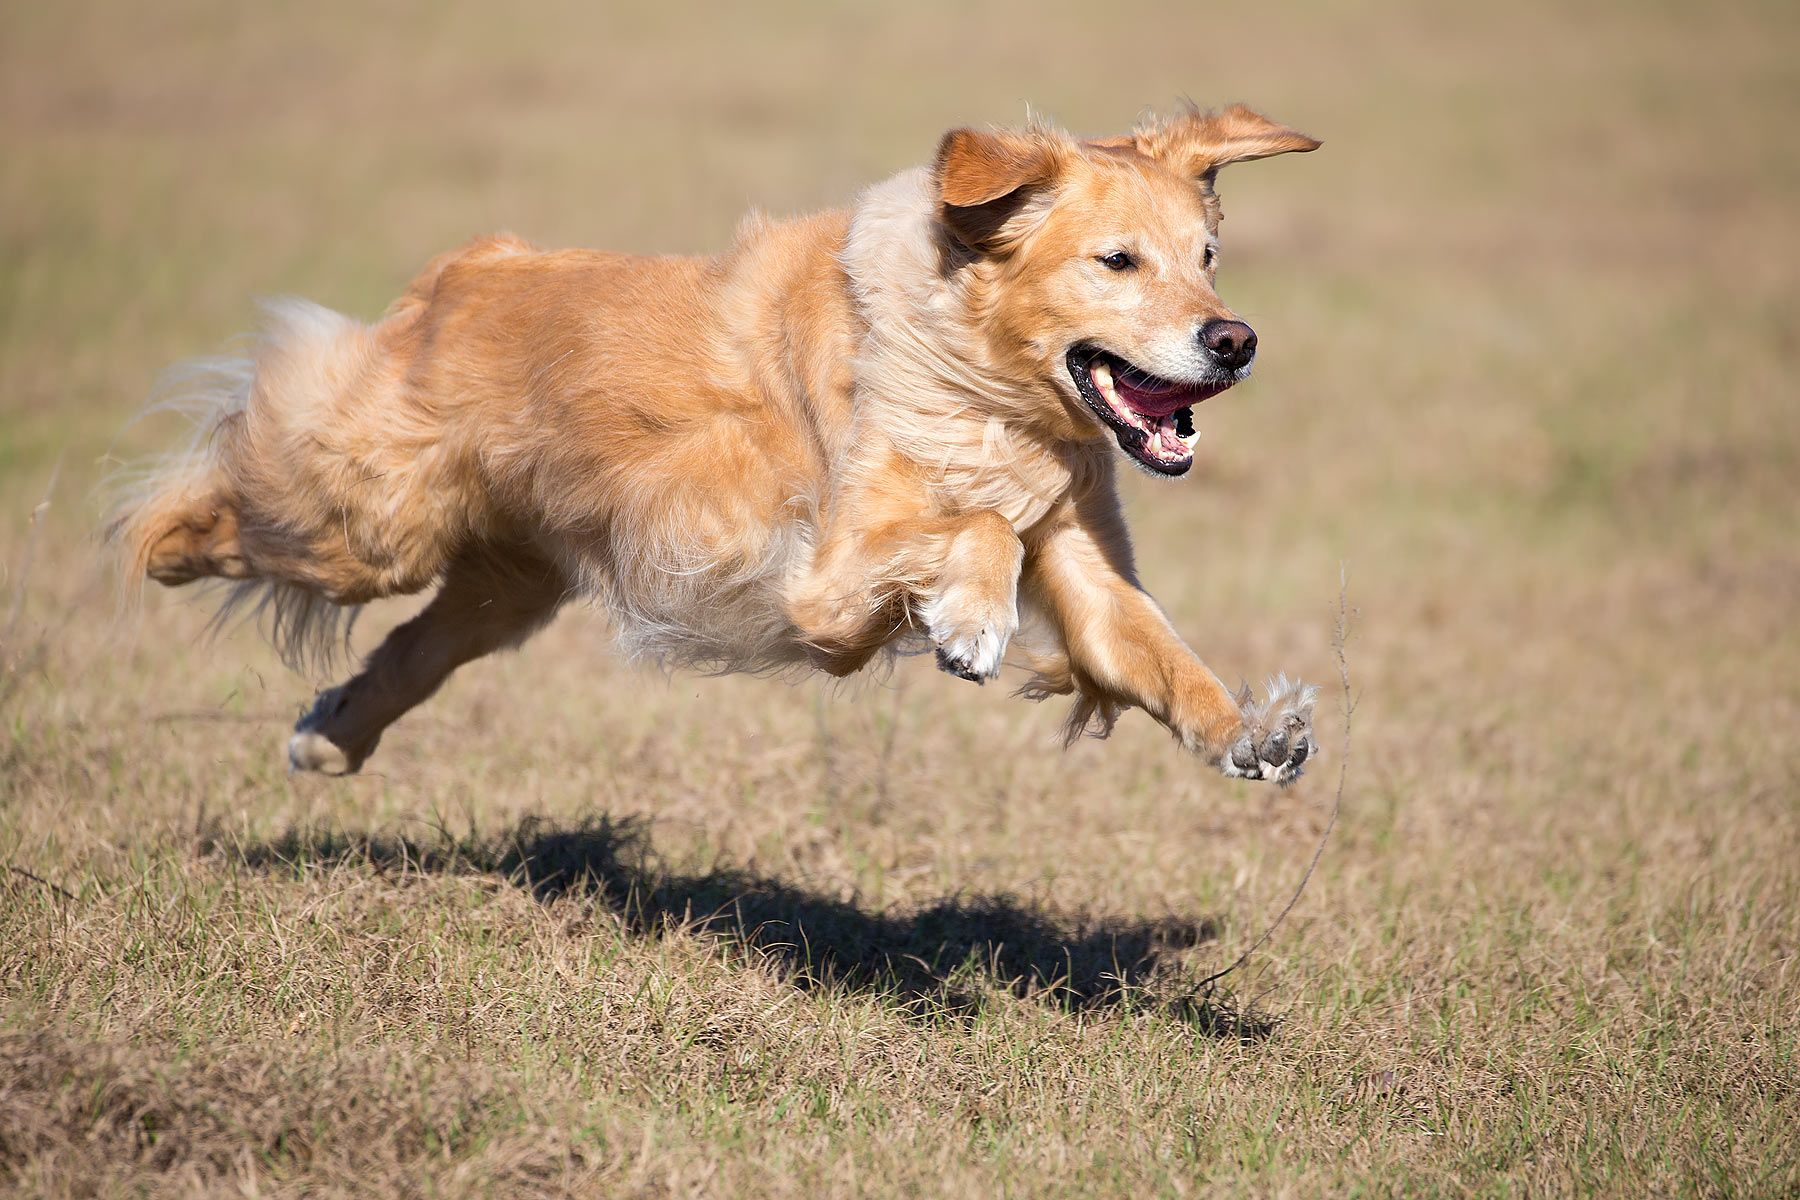 Jake-running-with-all-feet-in-the-air_B8R7330-Montverde,-FL,-USA.jpg